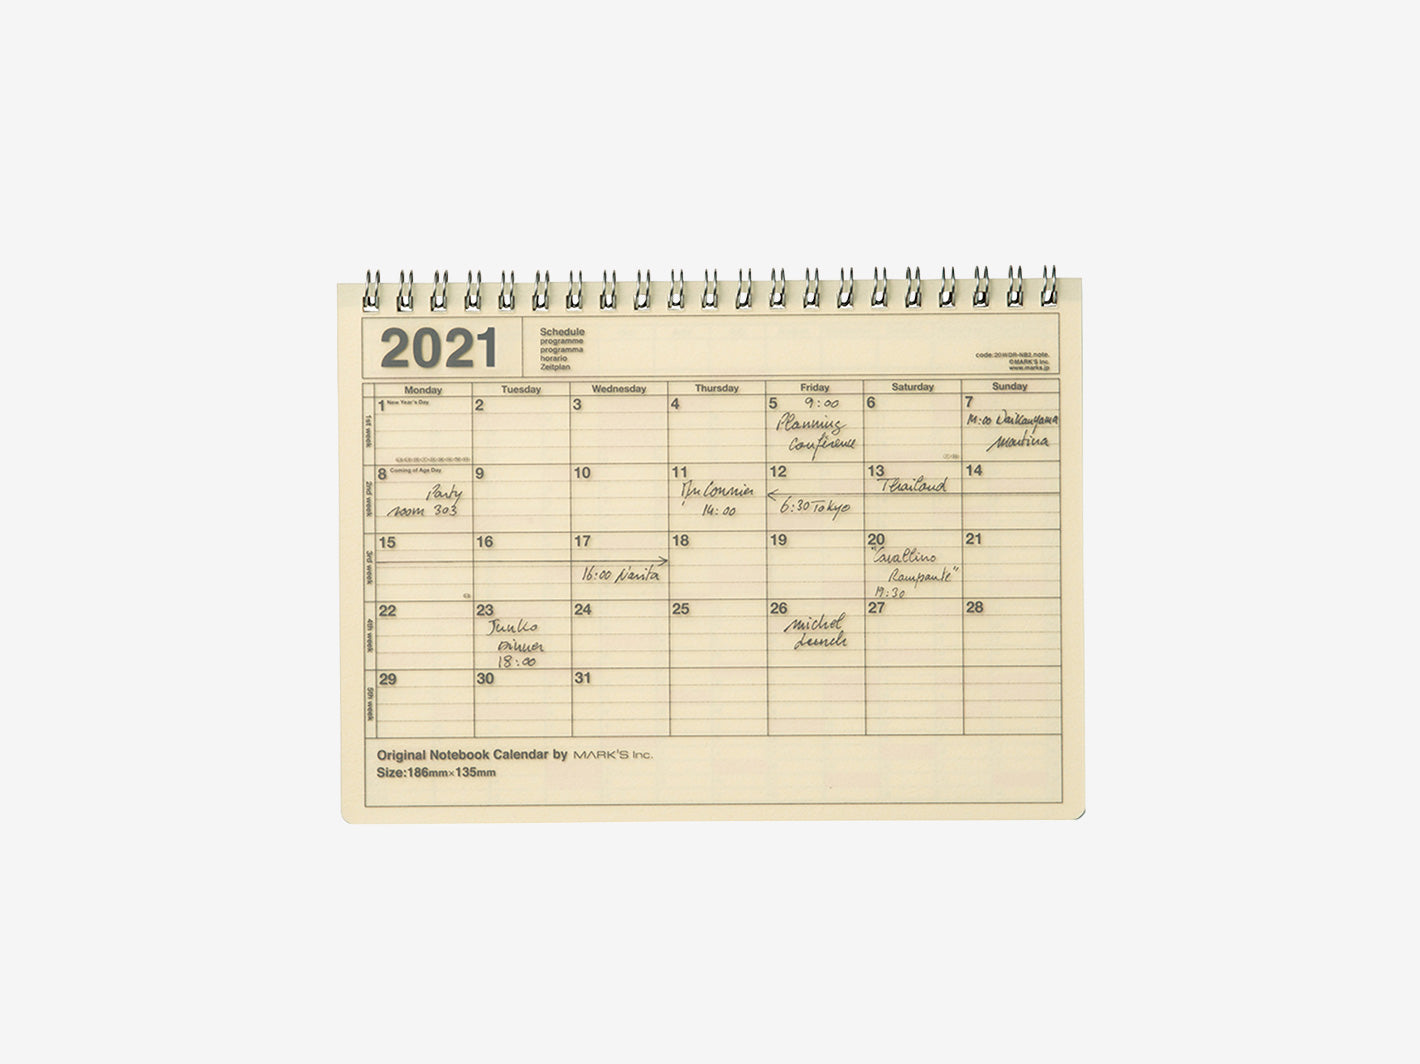 2021 Notebook Calendar Small Ivory